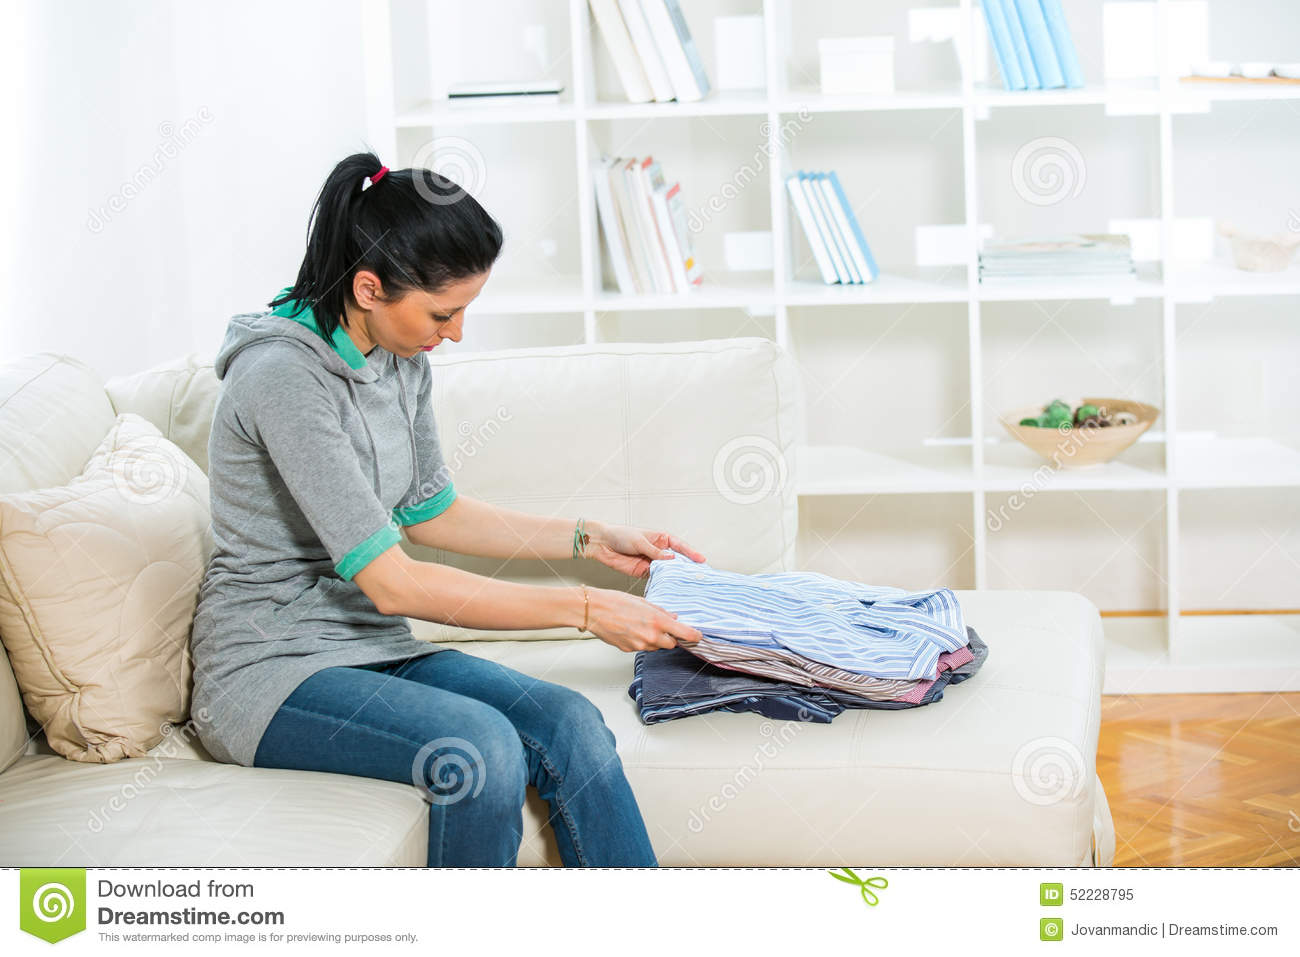 Woman Arrange Shirts In Living Room Stock Image - Image of person ...